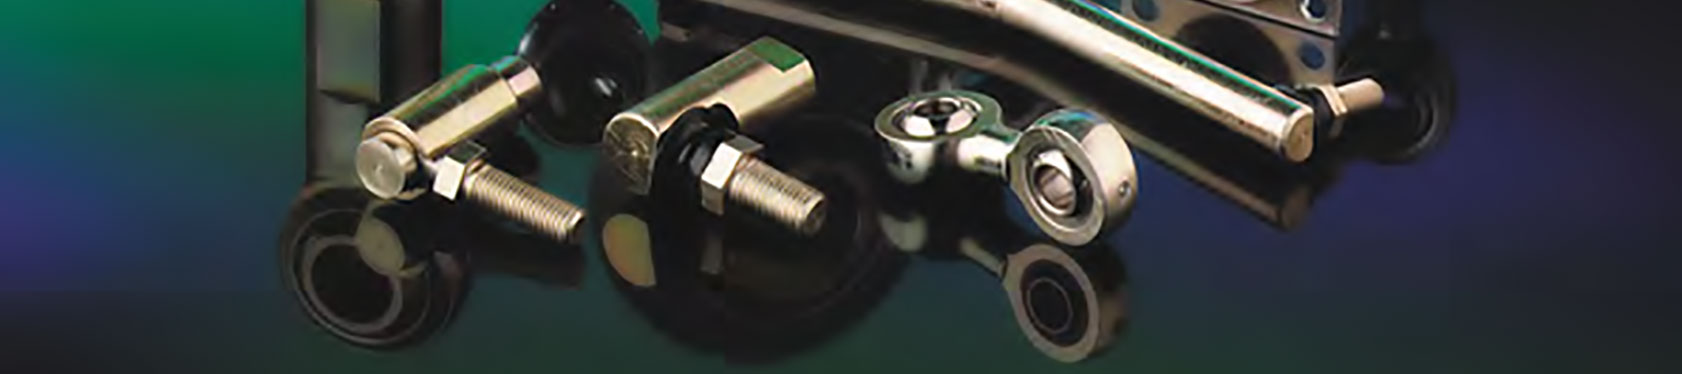 Cablecraft Motion Controls R-G, S, SS, SC and SR-G ball joints feature a two-component ball joint and pre-lubricated socket